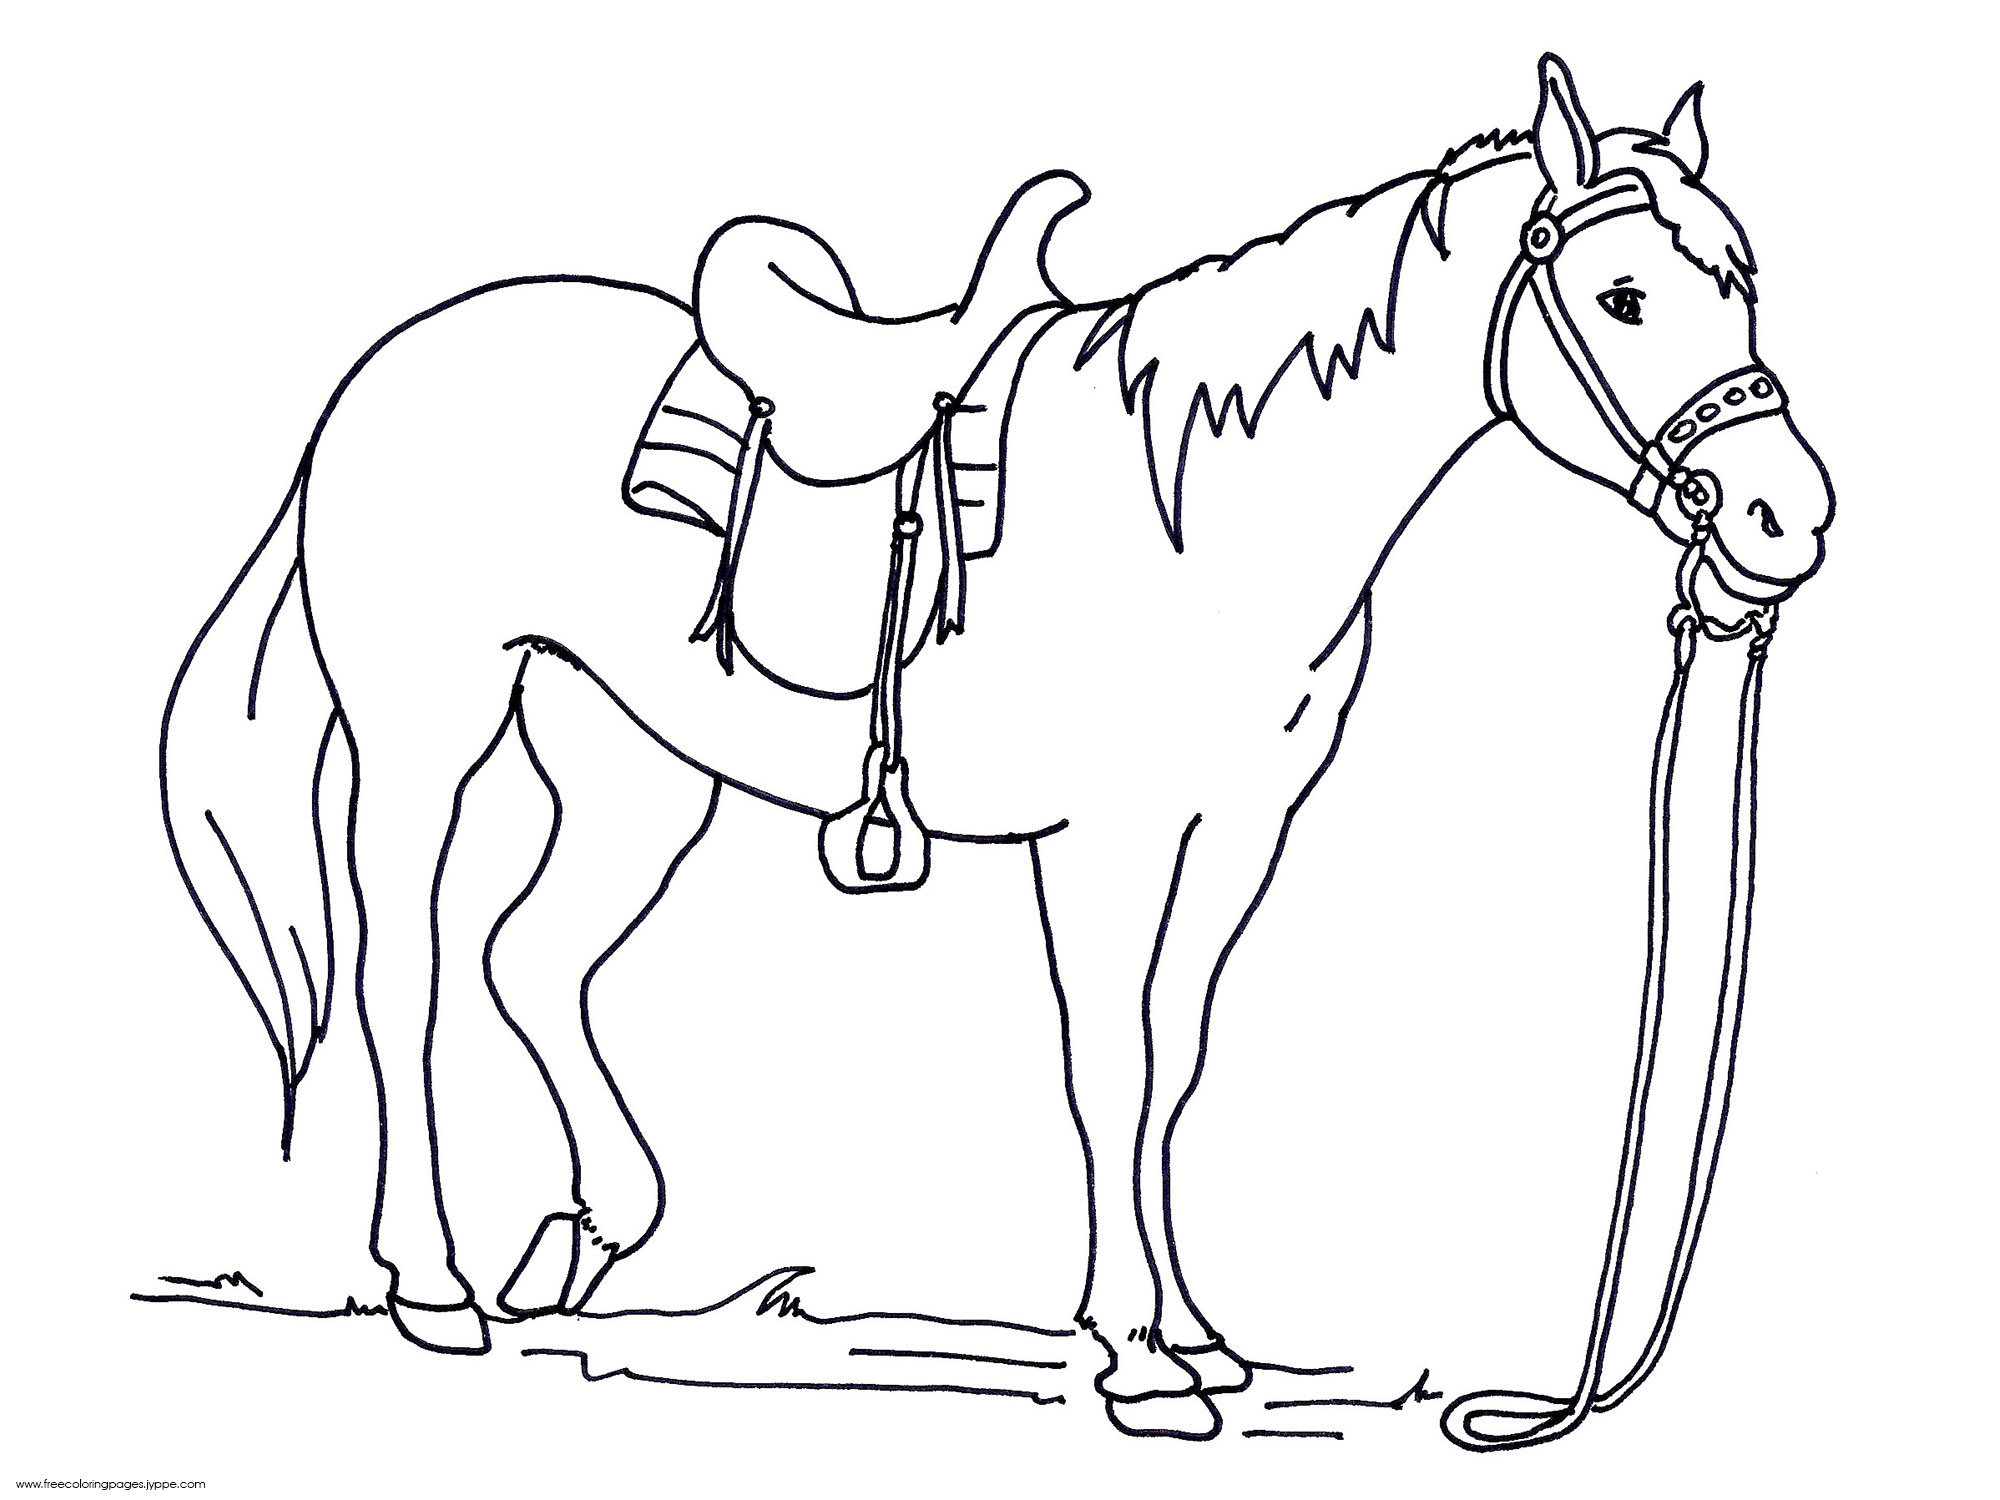 printable coloring pages of horses - realistic horse coloring pages to download and print for free